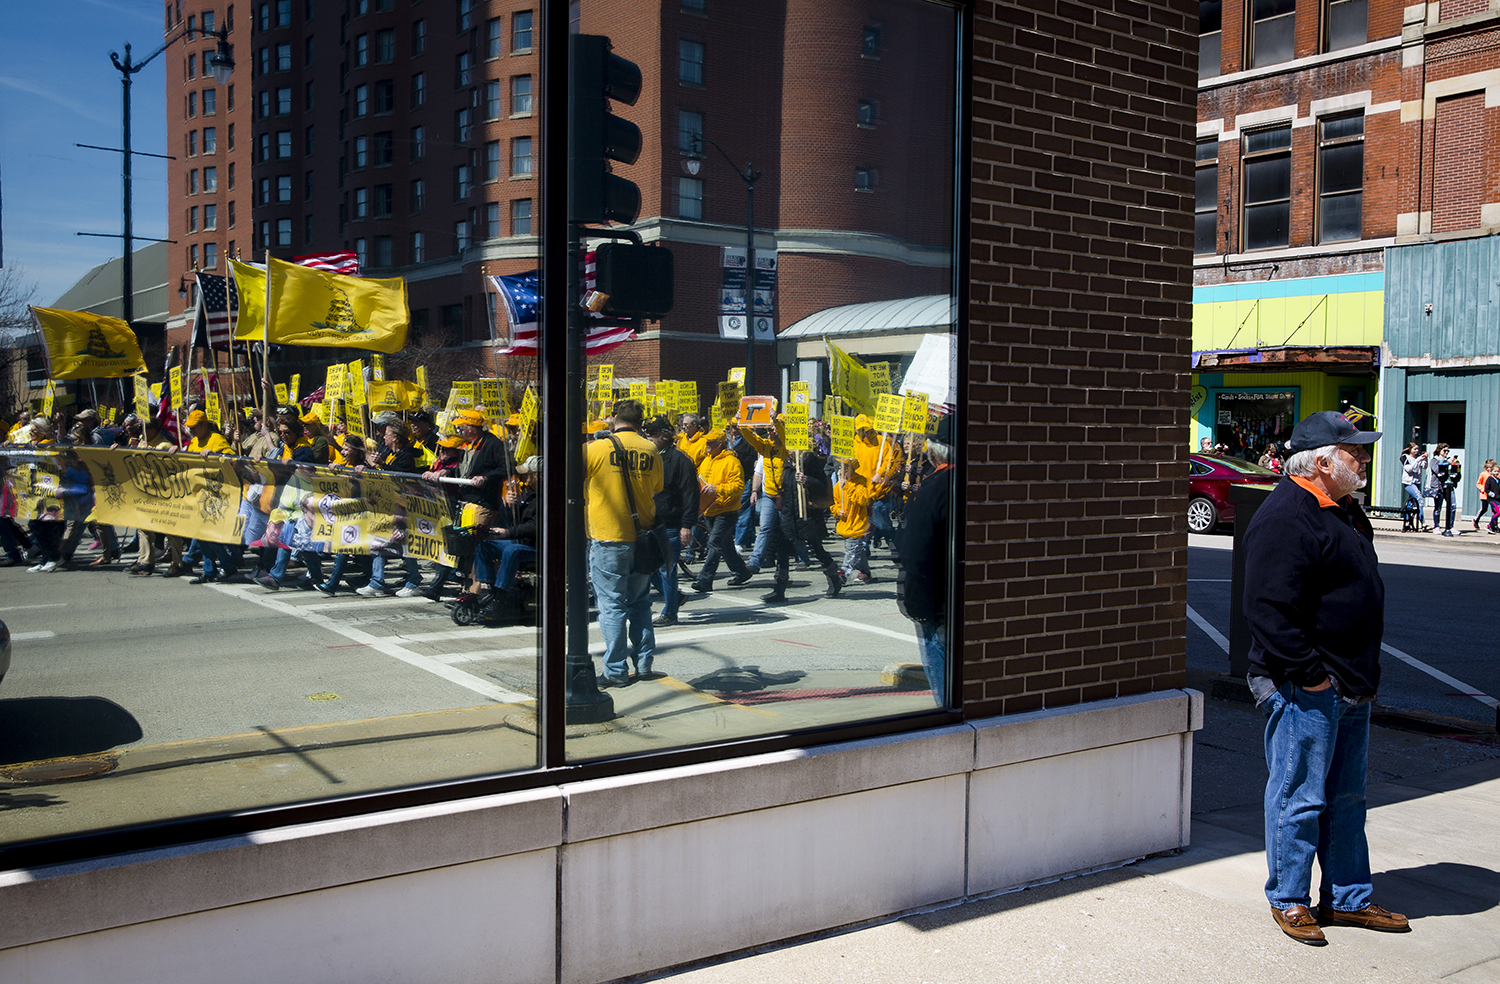 Gun rights advocates begin their march from the Bank of Springfield Center to the Capitol—the group reflected in the window of a building—during the Illinois State Rifle Association's annual gun owner's lobby day (IGOLD) Wednesday, March 27, 2019 in Springfield, Ill. [Rich Saal/The State Journal-Register]